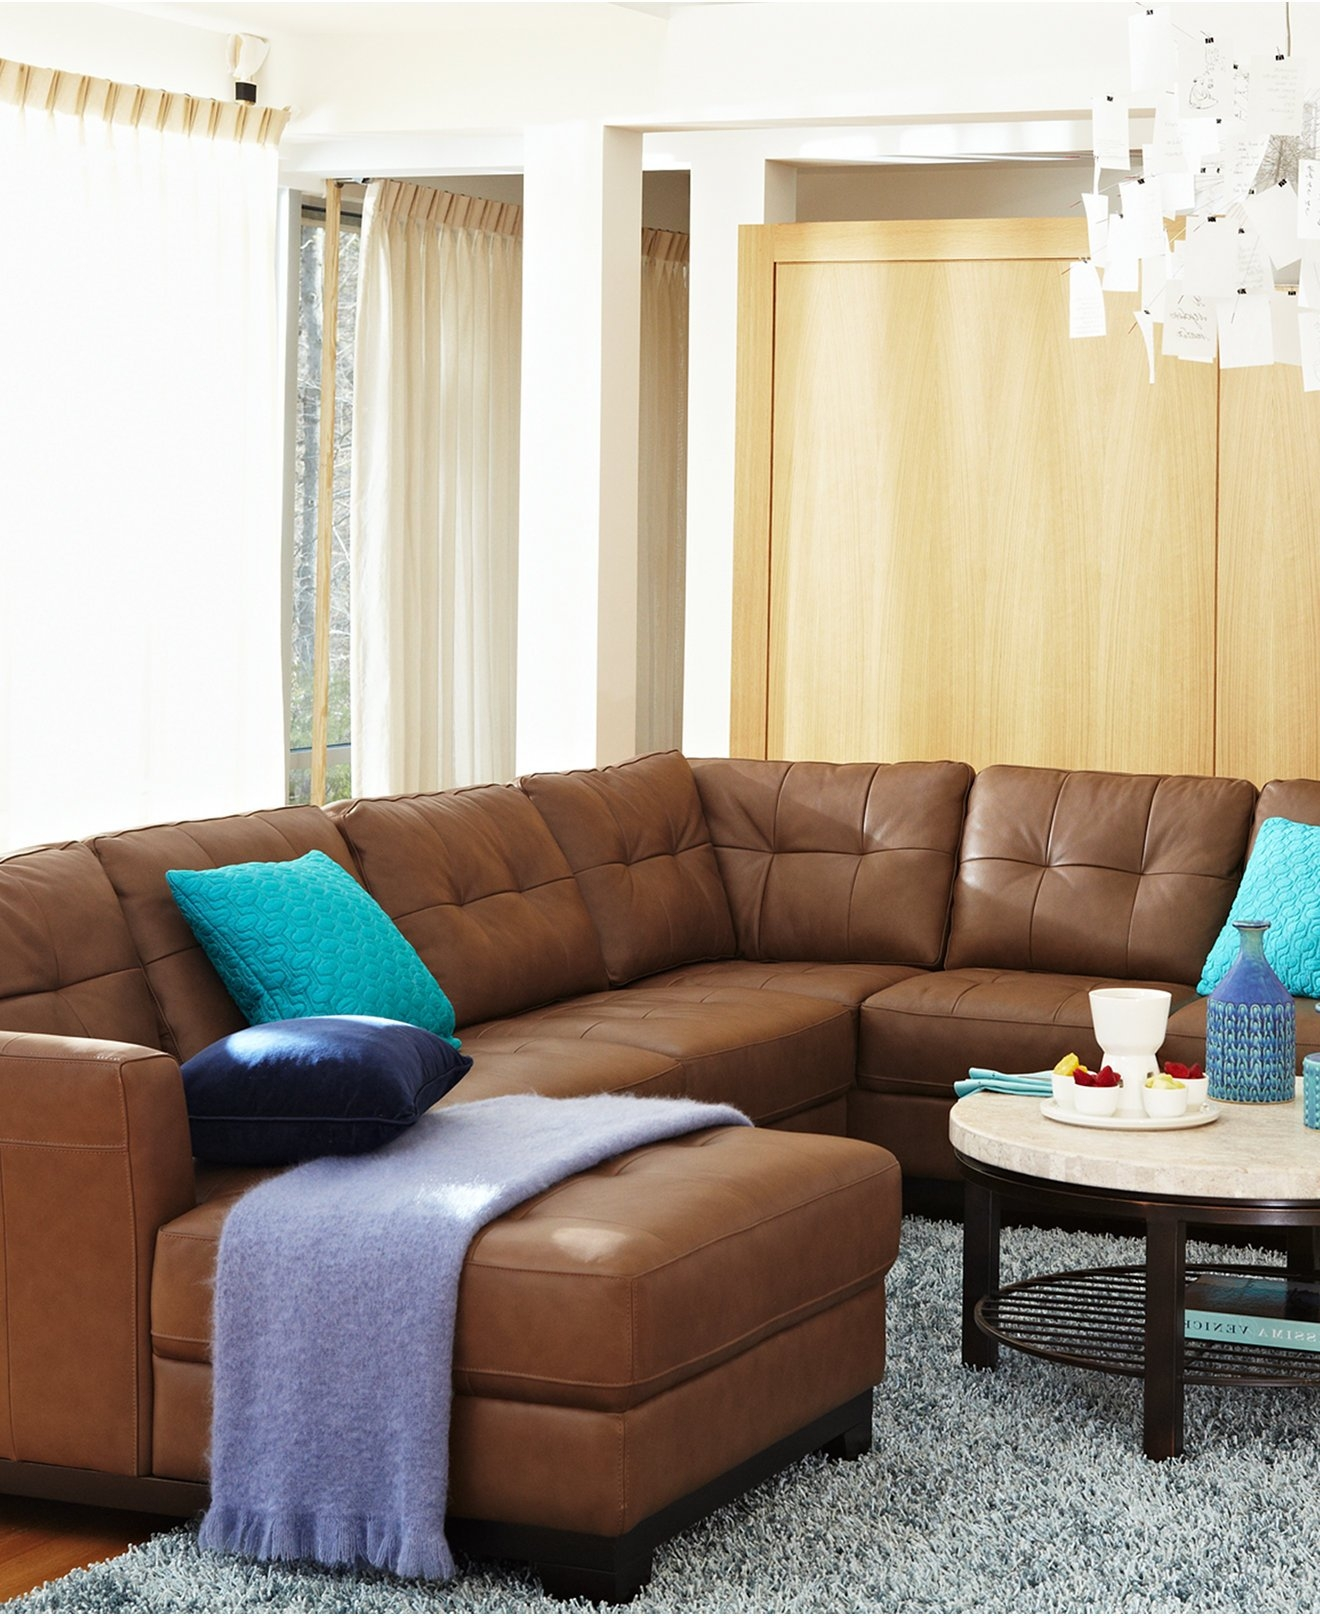 colorful sofa ideas twin bed mattress covers sectional sofas